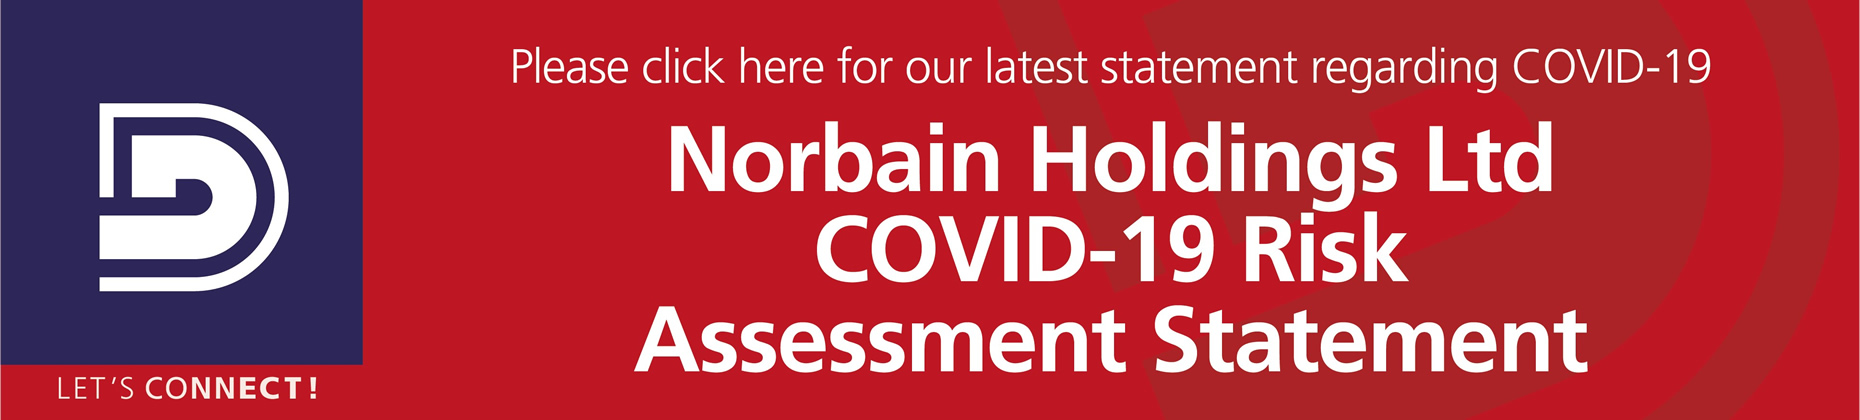 Please click here for our latest statement regarding COVID-19. Norbain Holdings Ltd COVID-19 Risk Assessment Statement